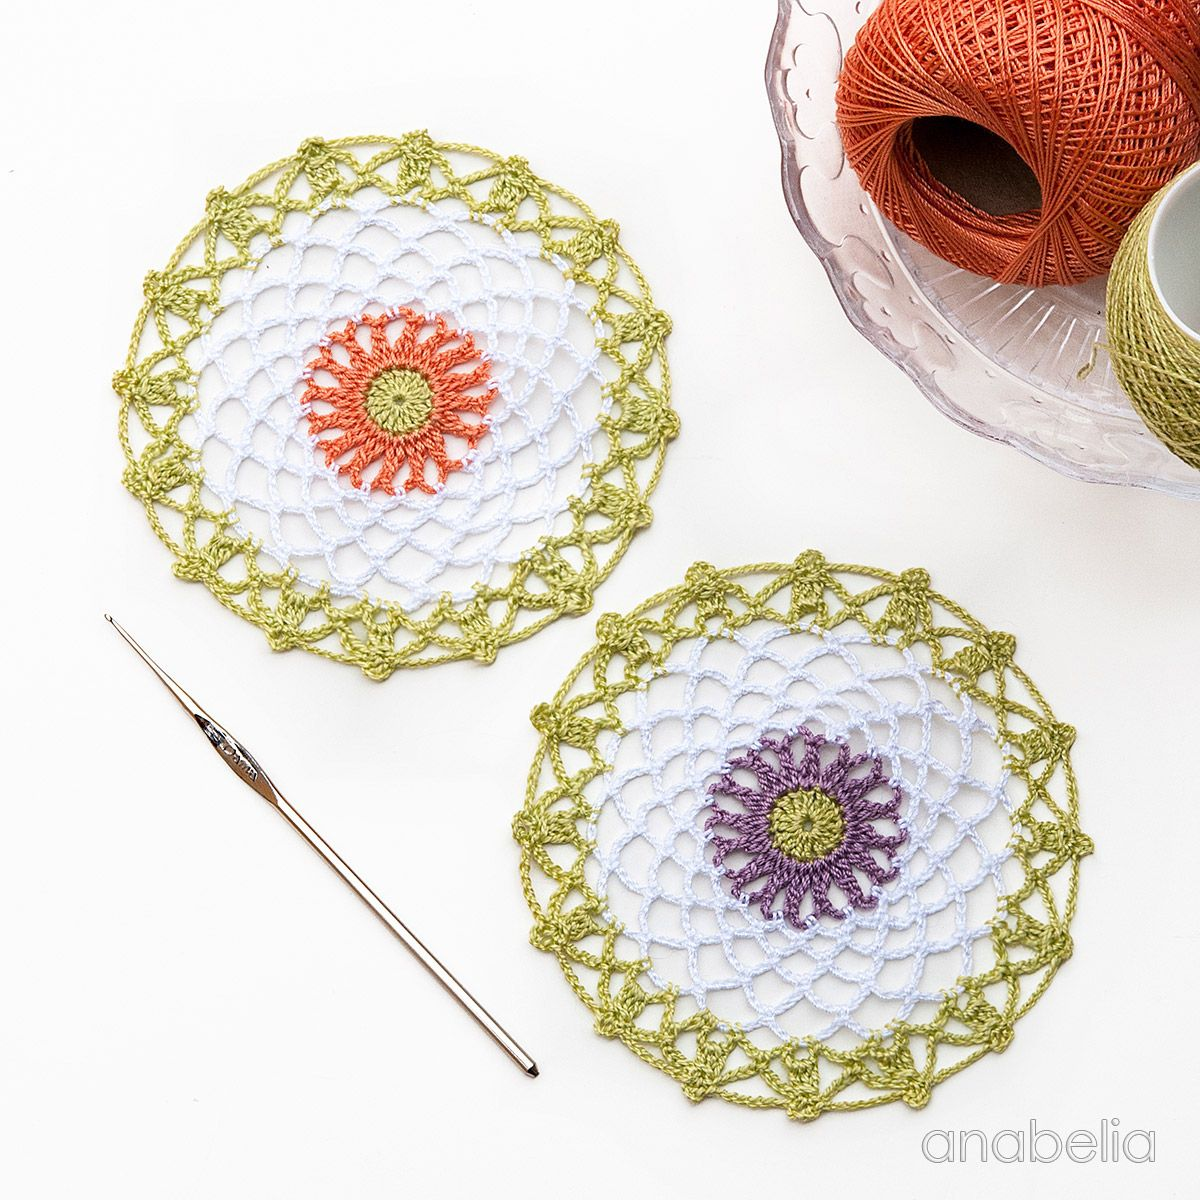 Mini crochet doilies free pattern, Anabelia Craft Design | knitting ...